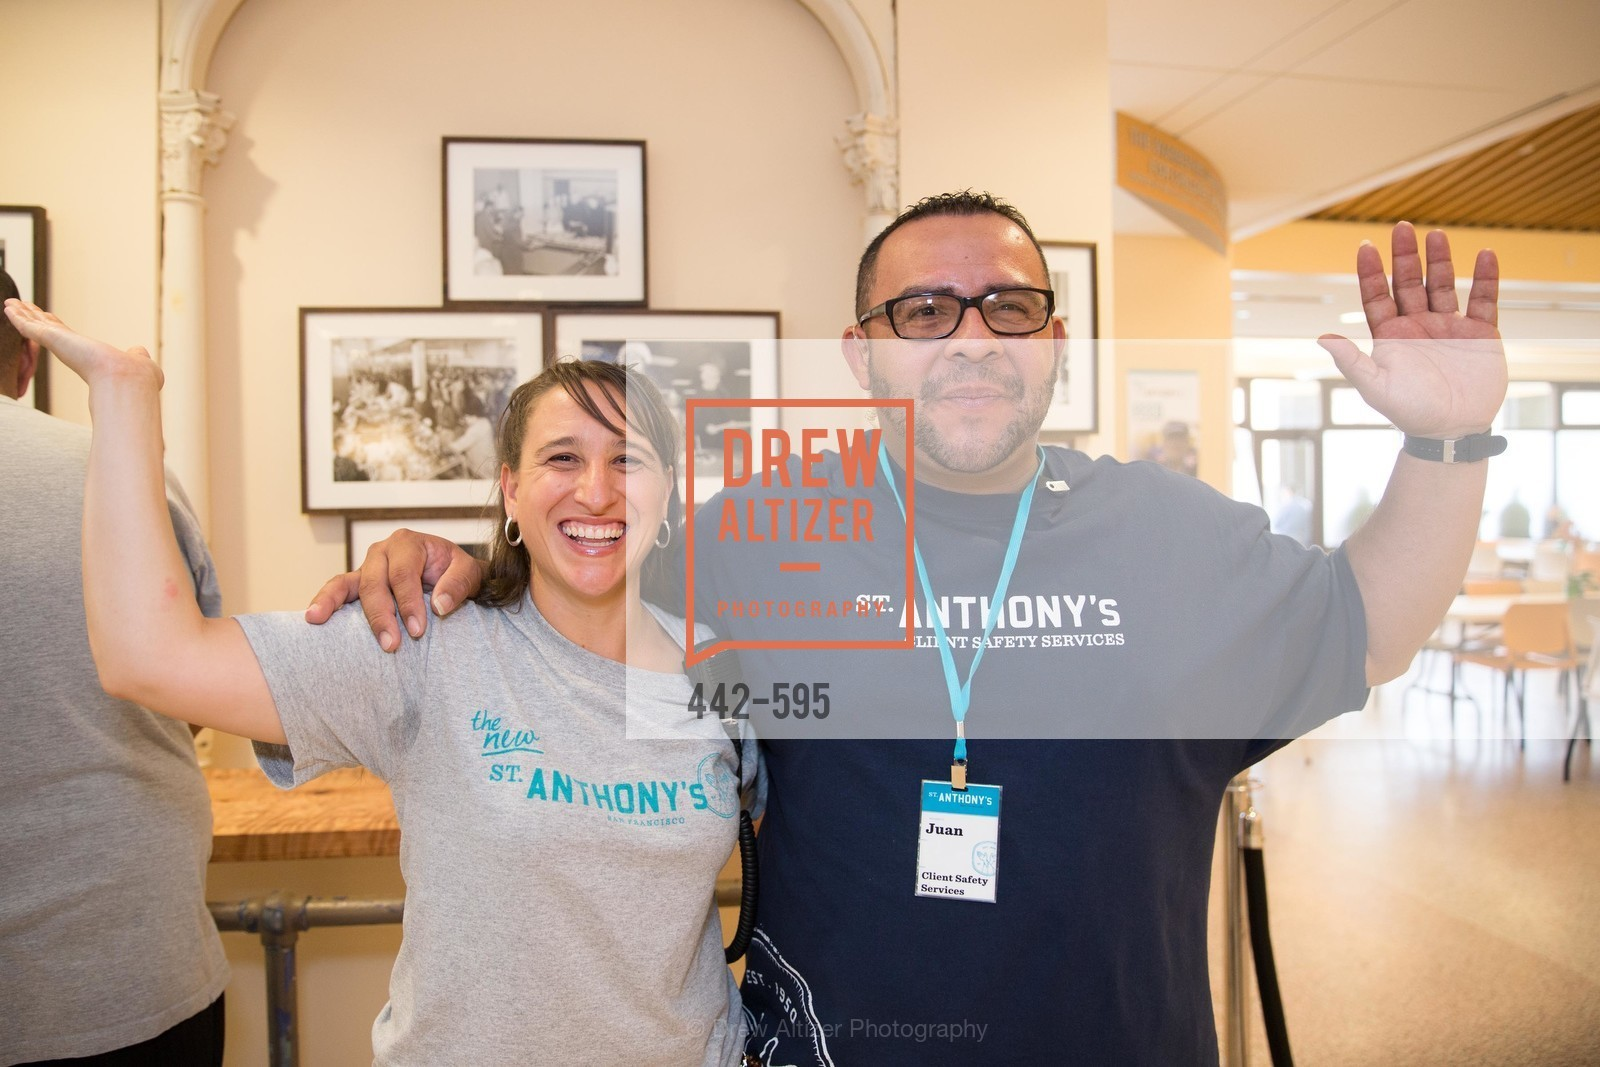 Angelina Cahalan, Juan Romero, ST. ANTHONY'S Dining Room Ribbon Cutting Ceremony, US, October 5th, 2014,Drew Altizer, Drew Altizer Photography, full-service agency, private events, San Francisco photographer, photographer california